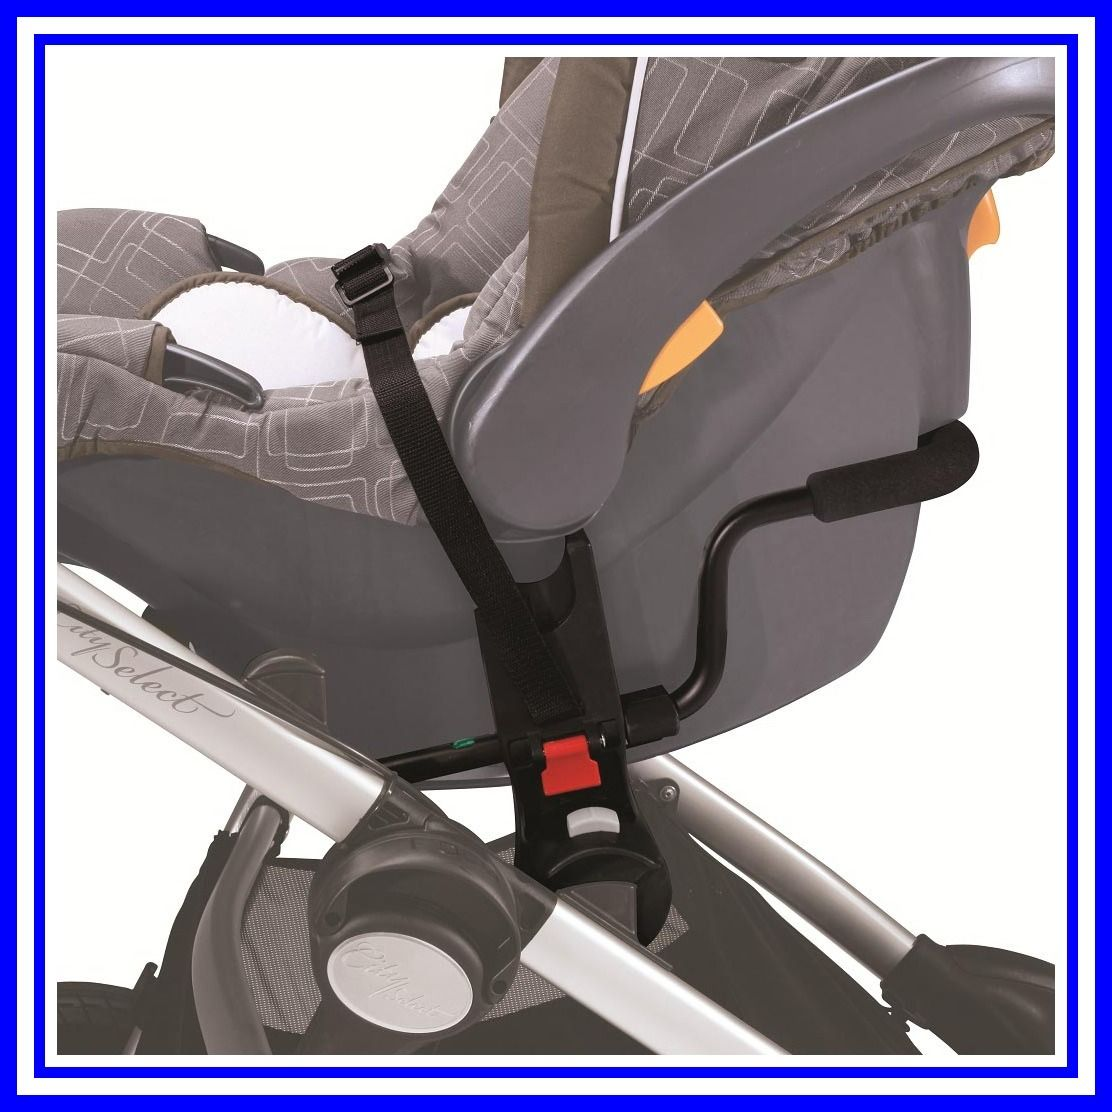 116 reference of city select stroller britax bsafe car